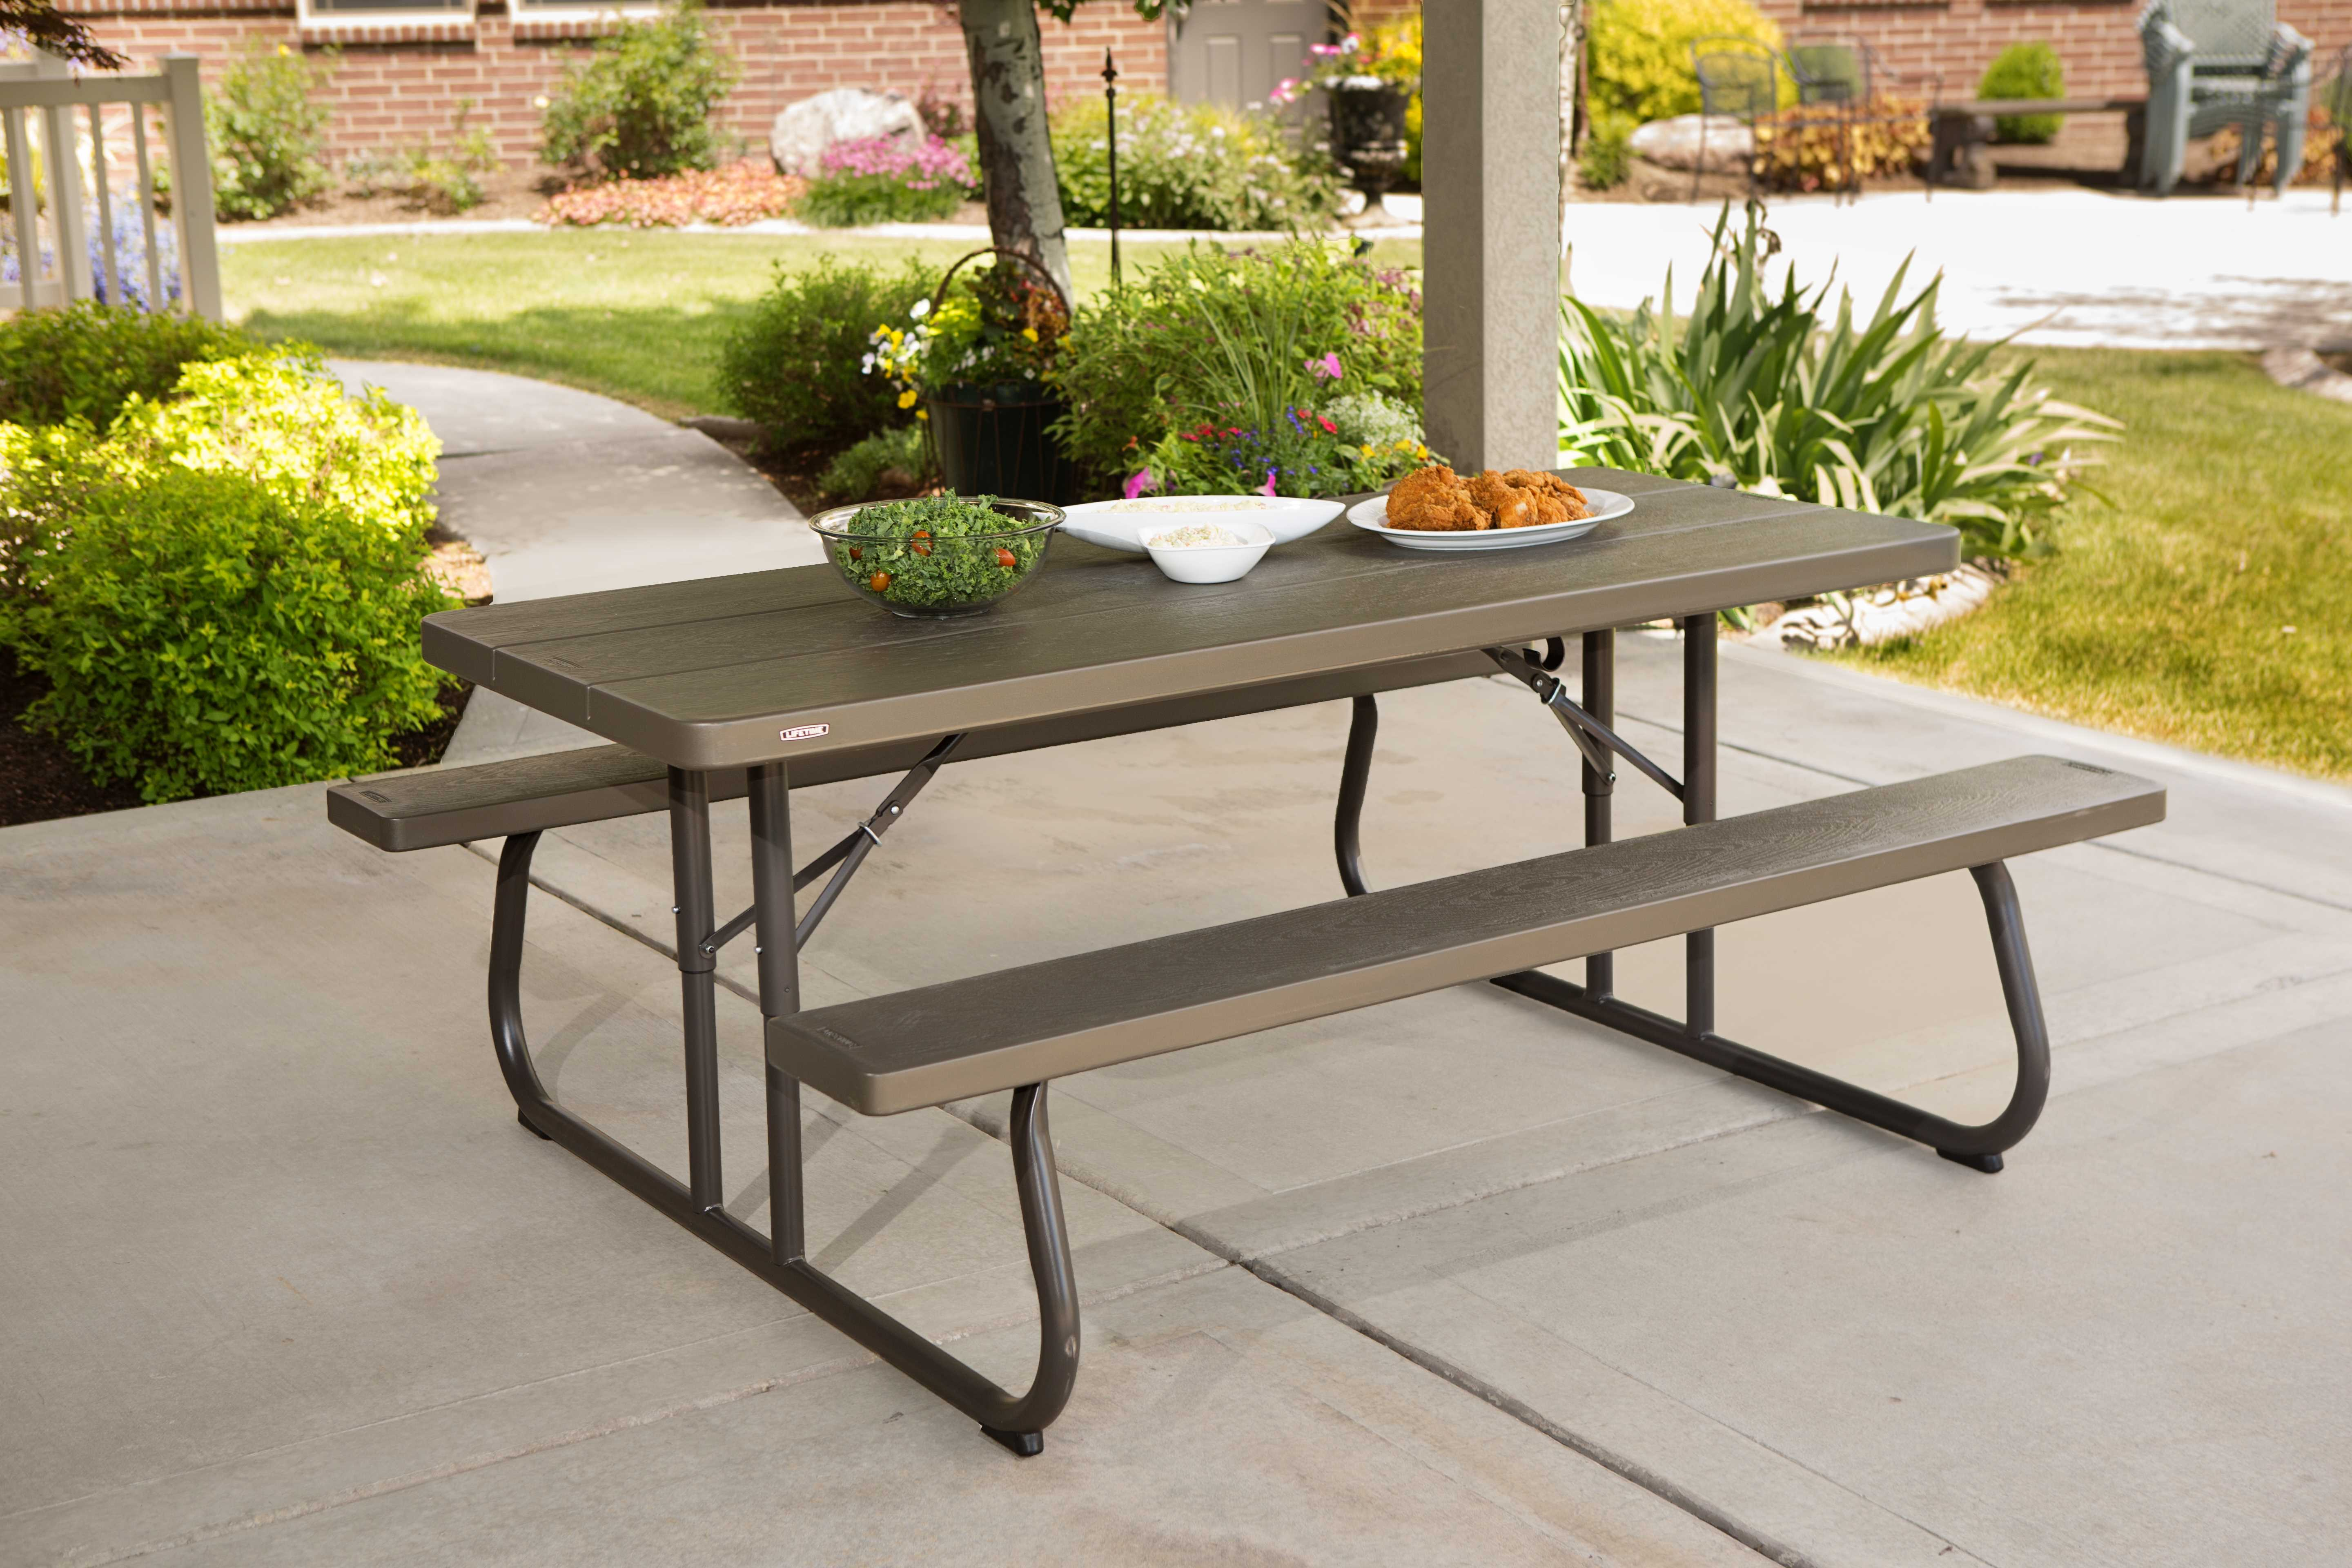 Exceptional Lifetime Picnic Tables 860105 Faux Wood 6 Foot Top Benches 10 Pack